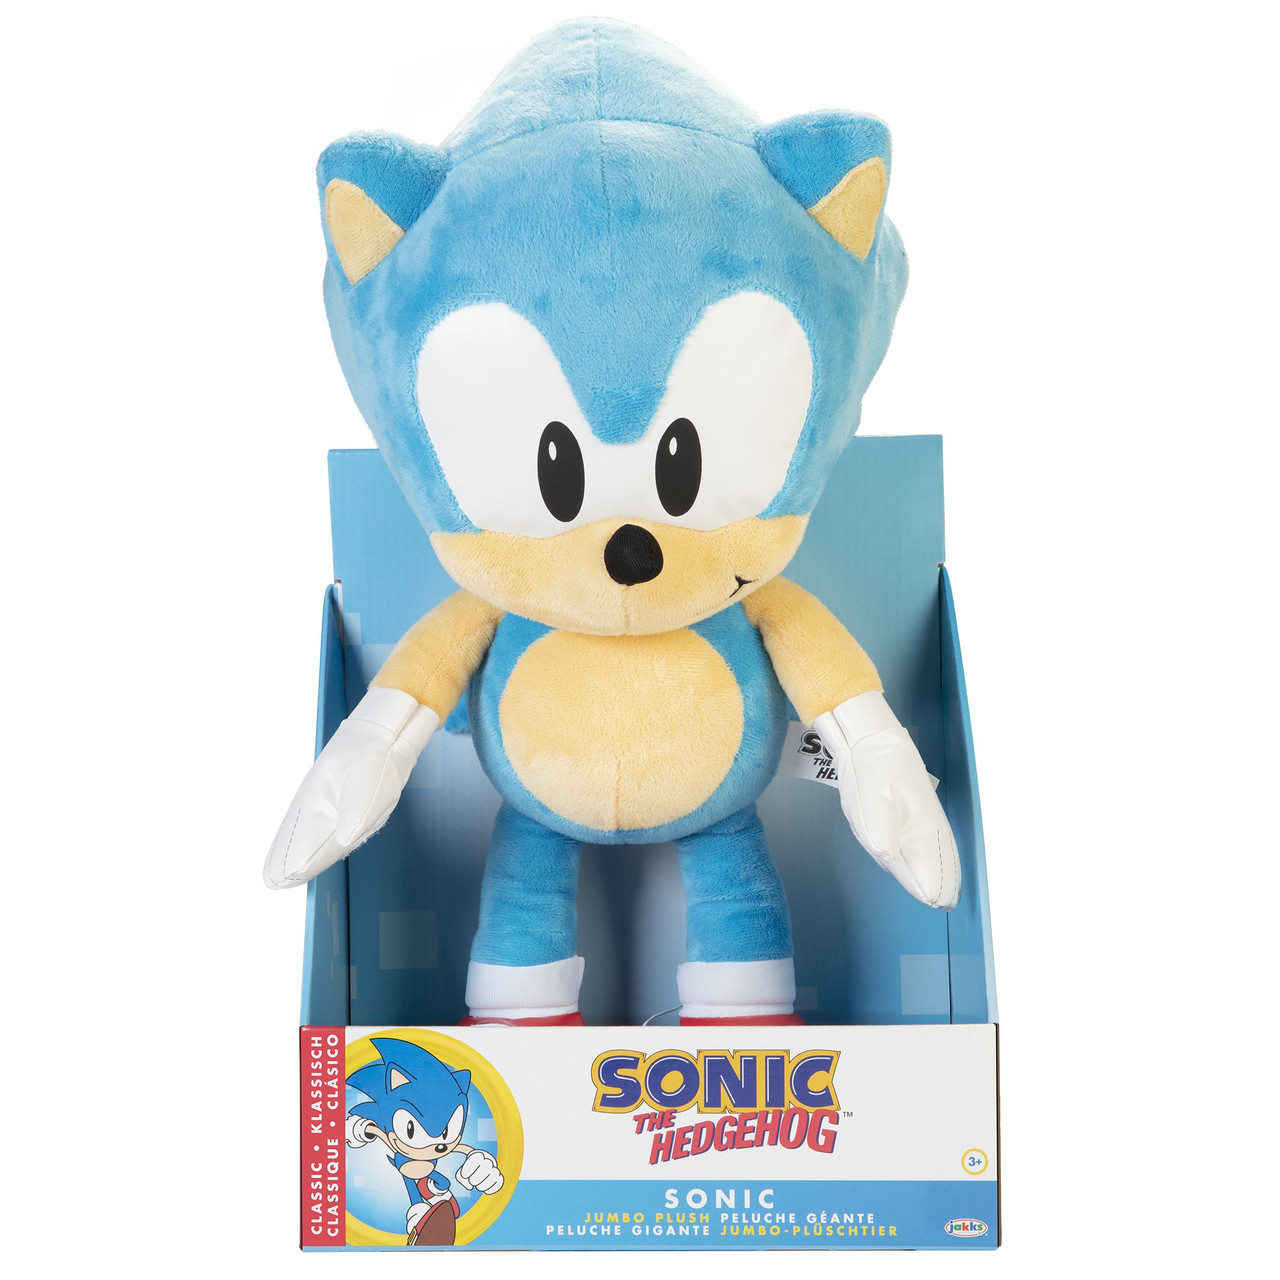 Sonic The Hedgehog Sonic Jumbo Plush Classic Jakks Pacific Toywiz